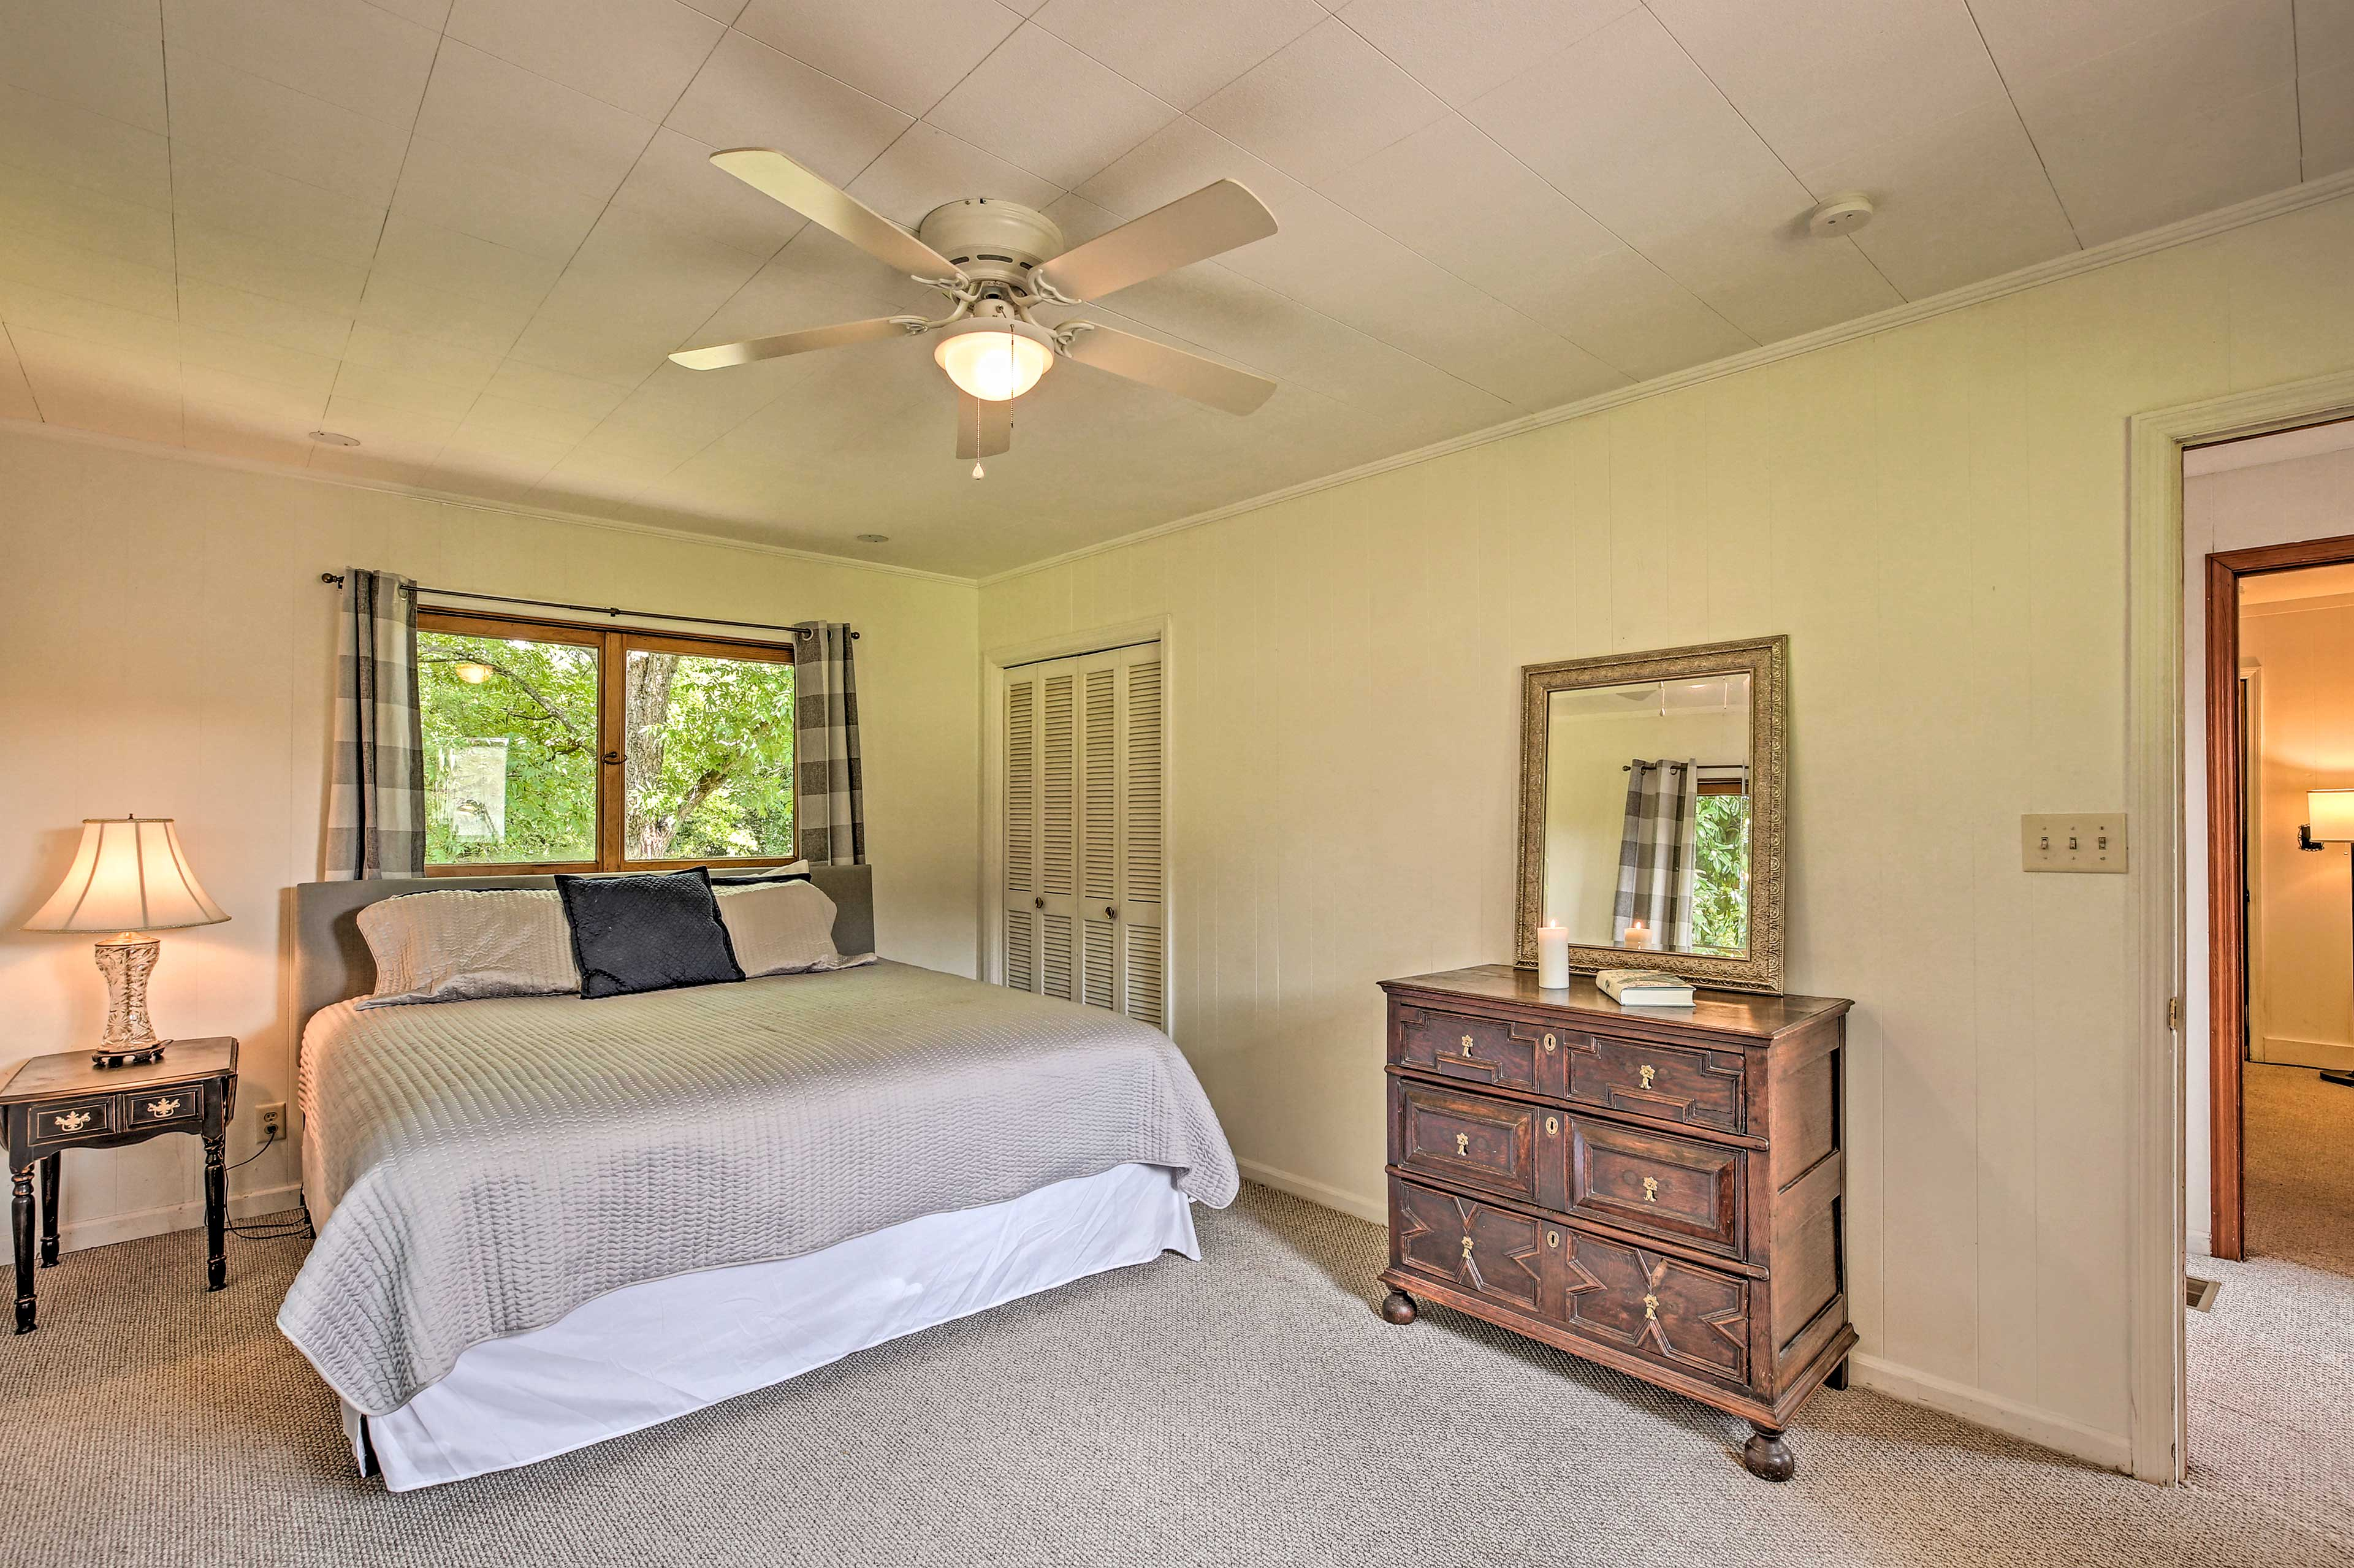 The master bedroom is a comfortable retreat.